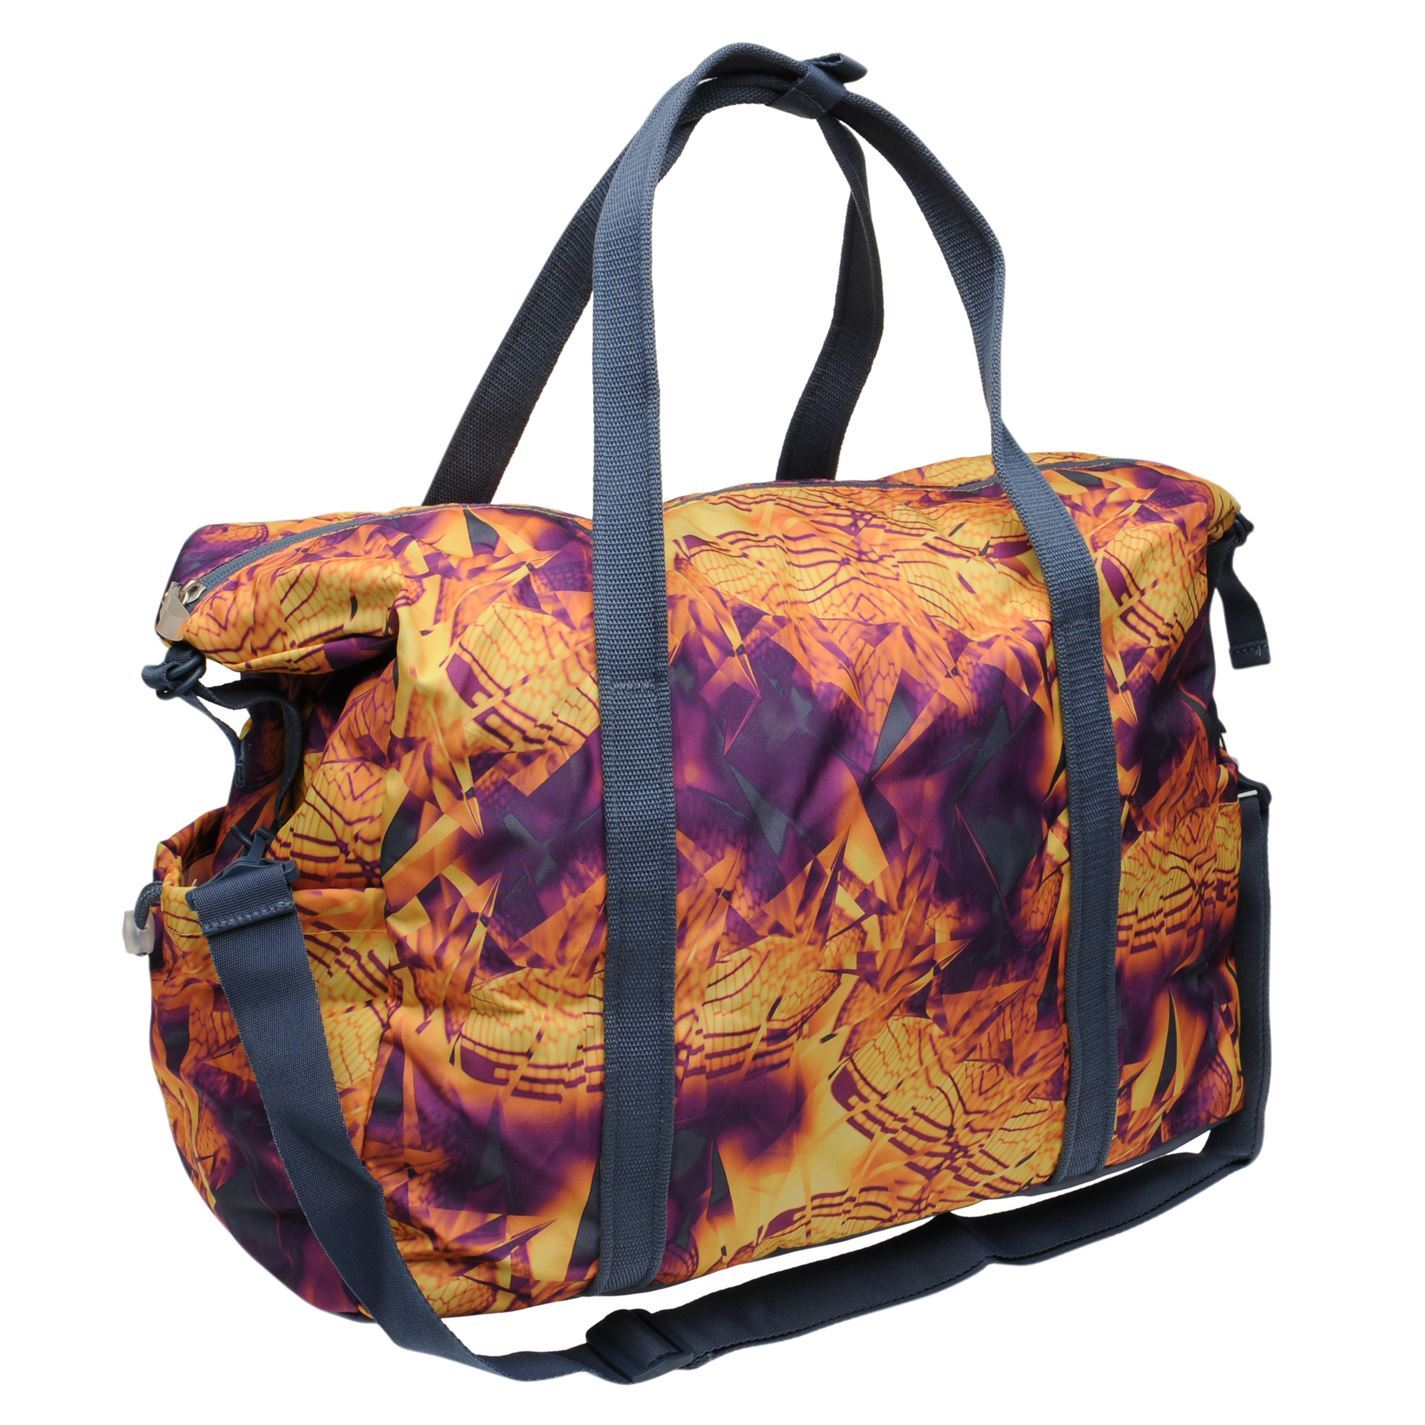 Adidas perfect graphic tote bag womens inkgold sports gymbag kitbag adidas perfect graphic tote bag womens inkgold sports gymbag kitbag publicscrutiny Choice Image